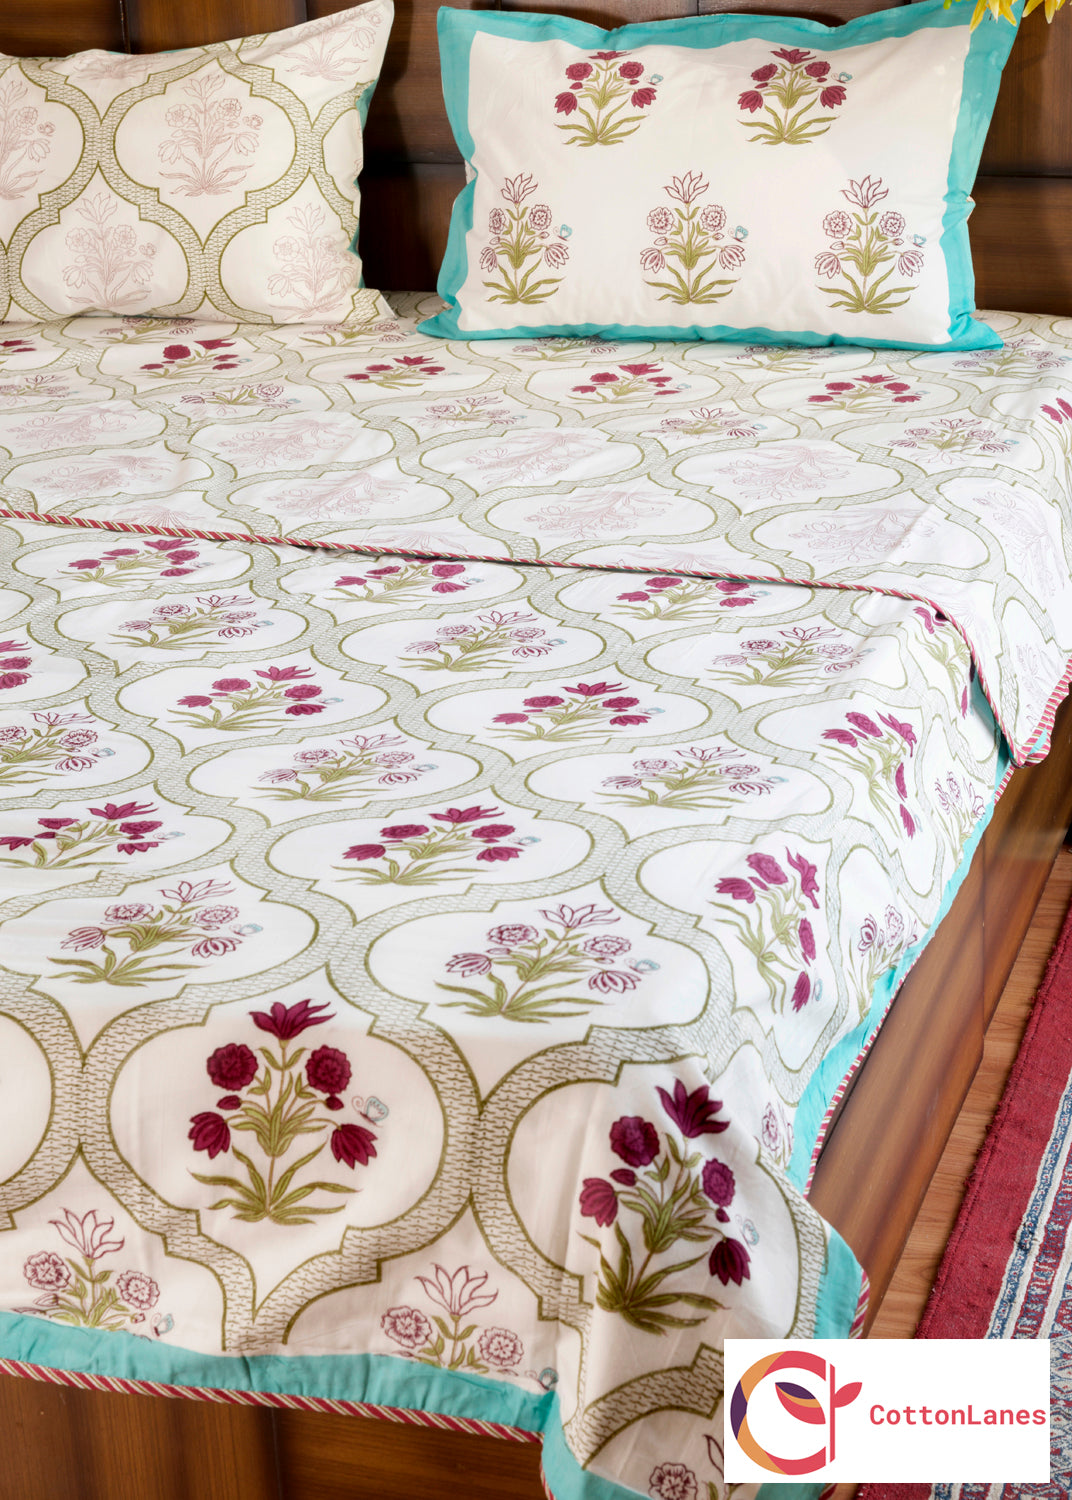 Floral Window Reversible Comforter-CottonLanes